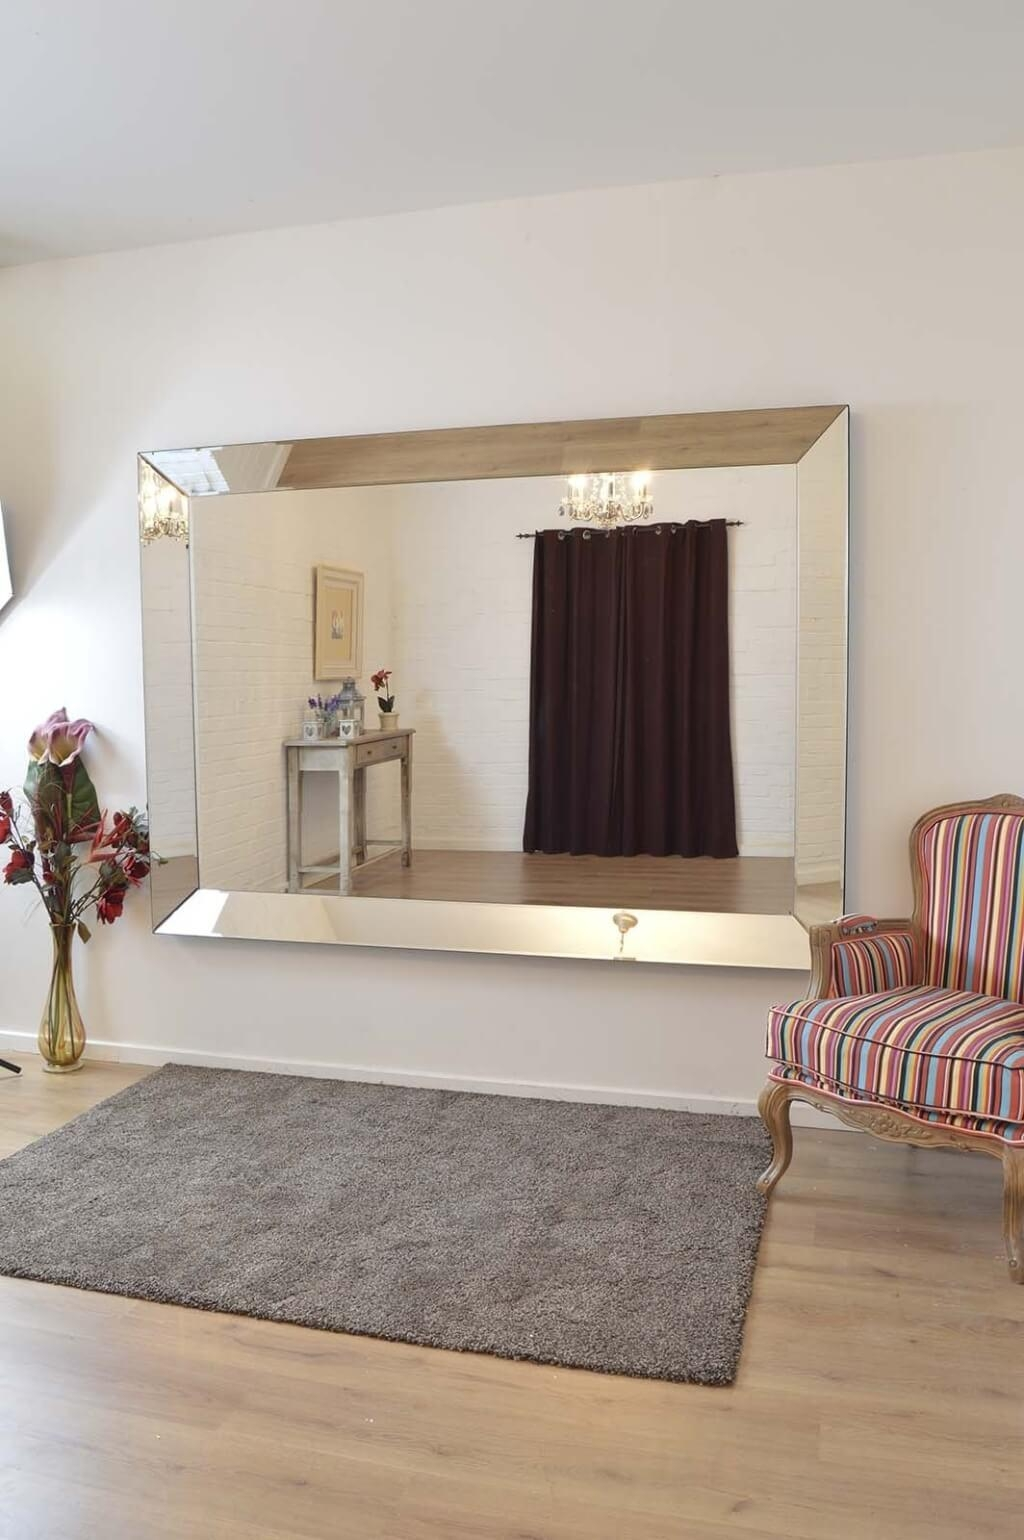 Home Decoration: Decorative Small Frameless Mirrors And Octagonal Within Small Antique Mirrors (Image 9 of 20)